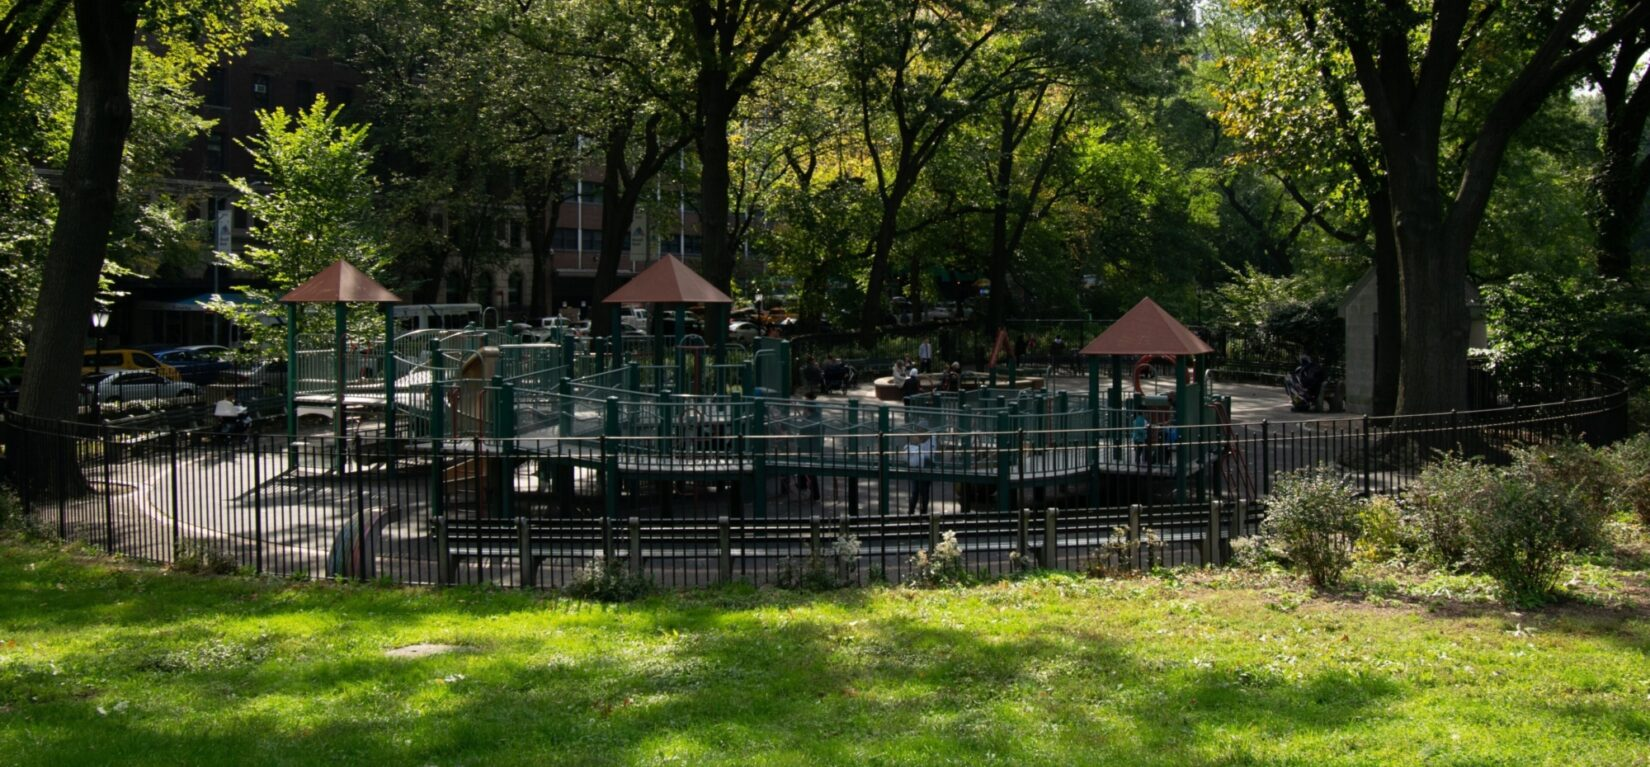 A view of the playground from afar, highlighting the green surroundings